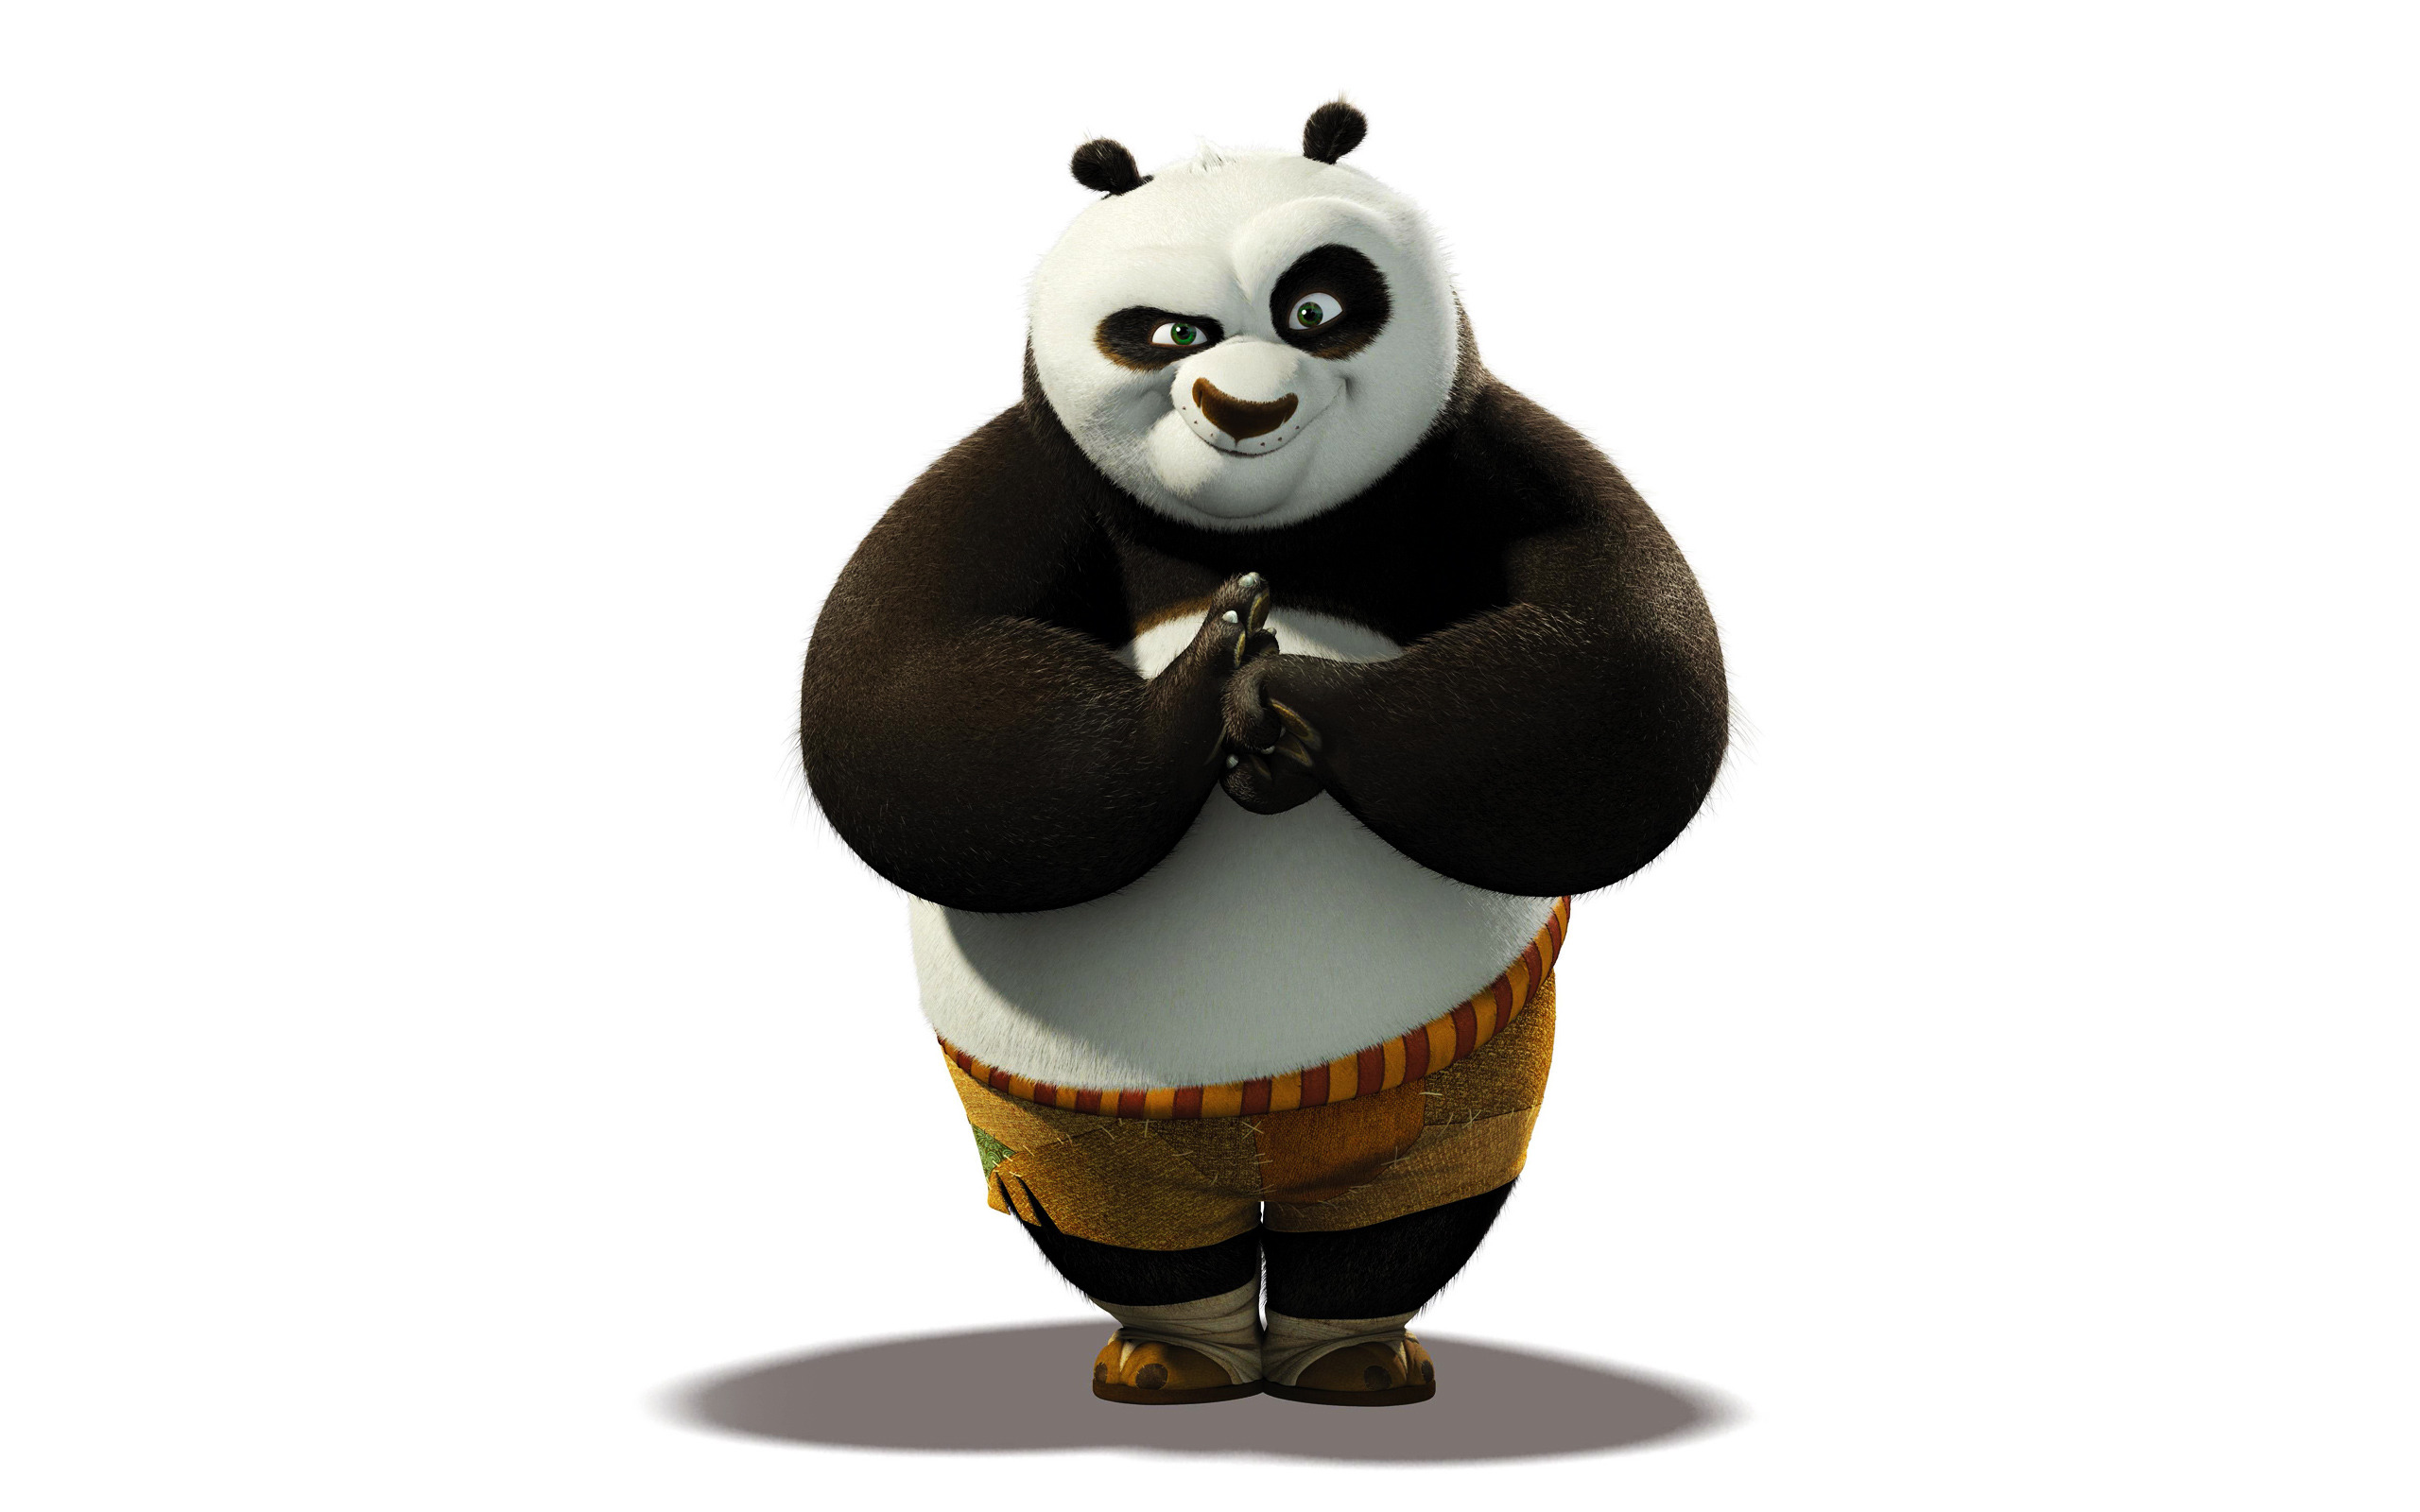 free kung fu panda 2 wallpaper 33353 2560x1600 px ~ hdwallsource